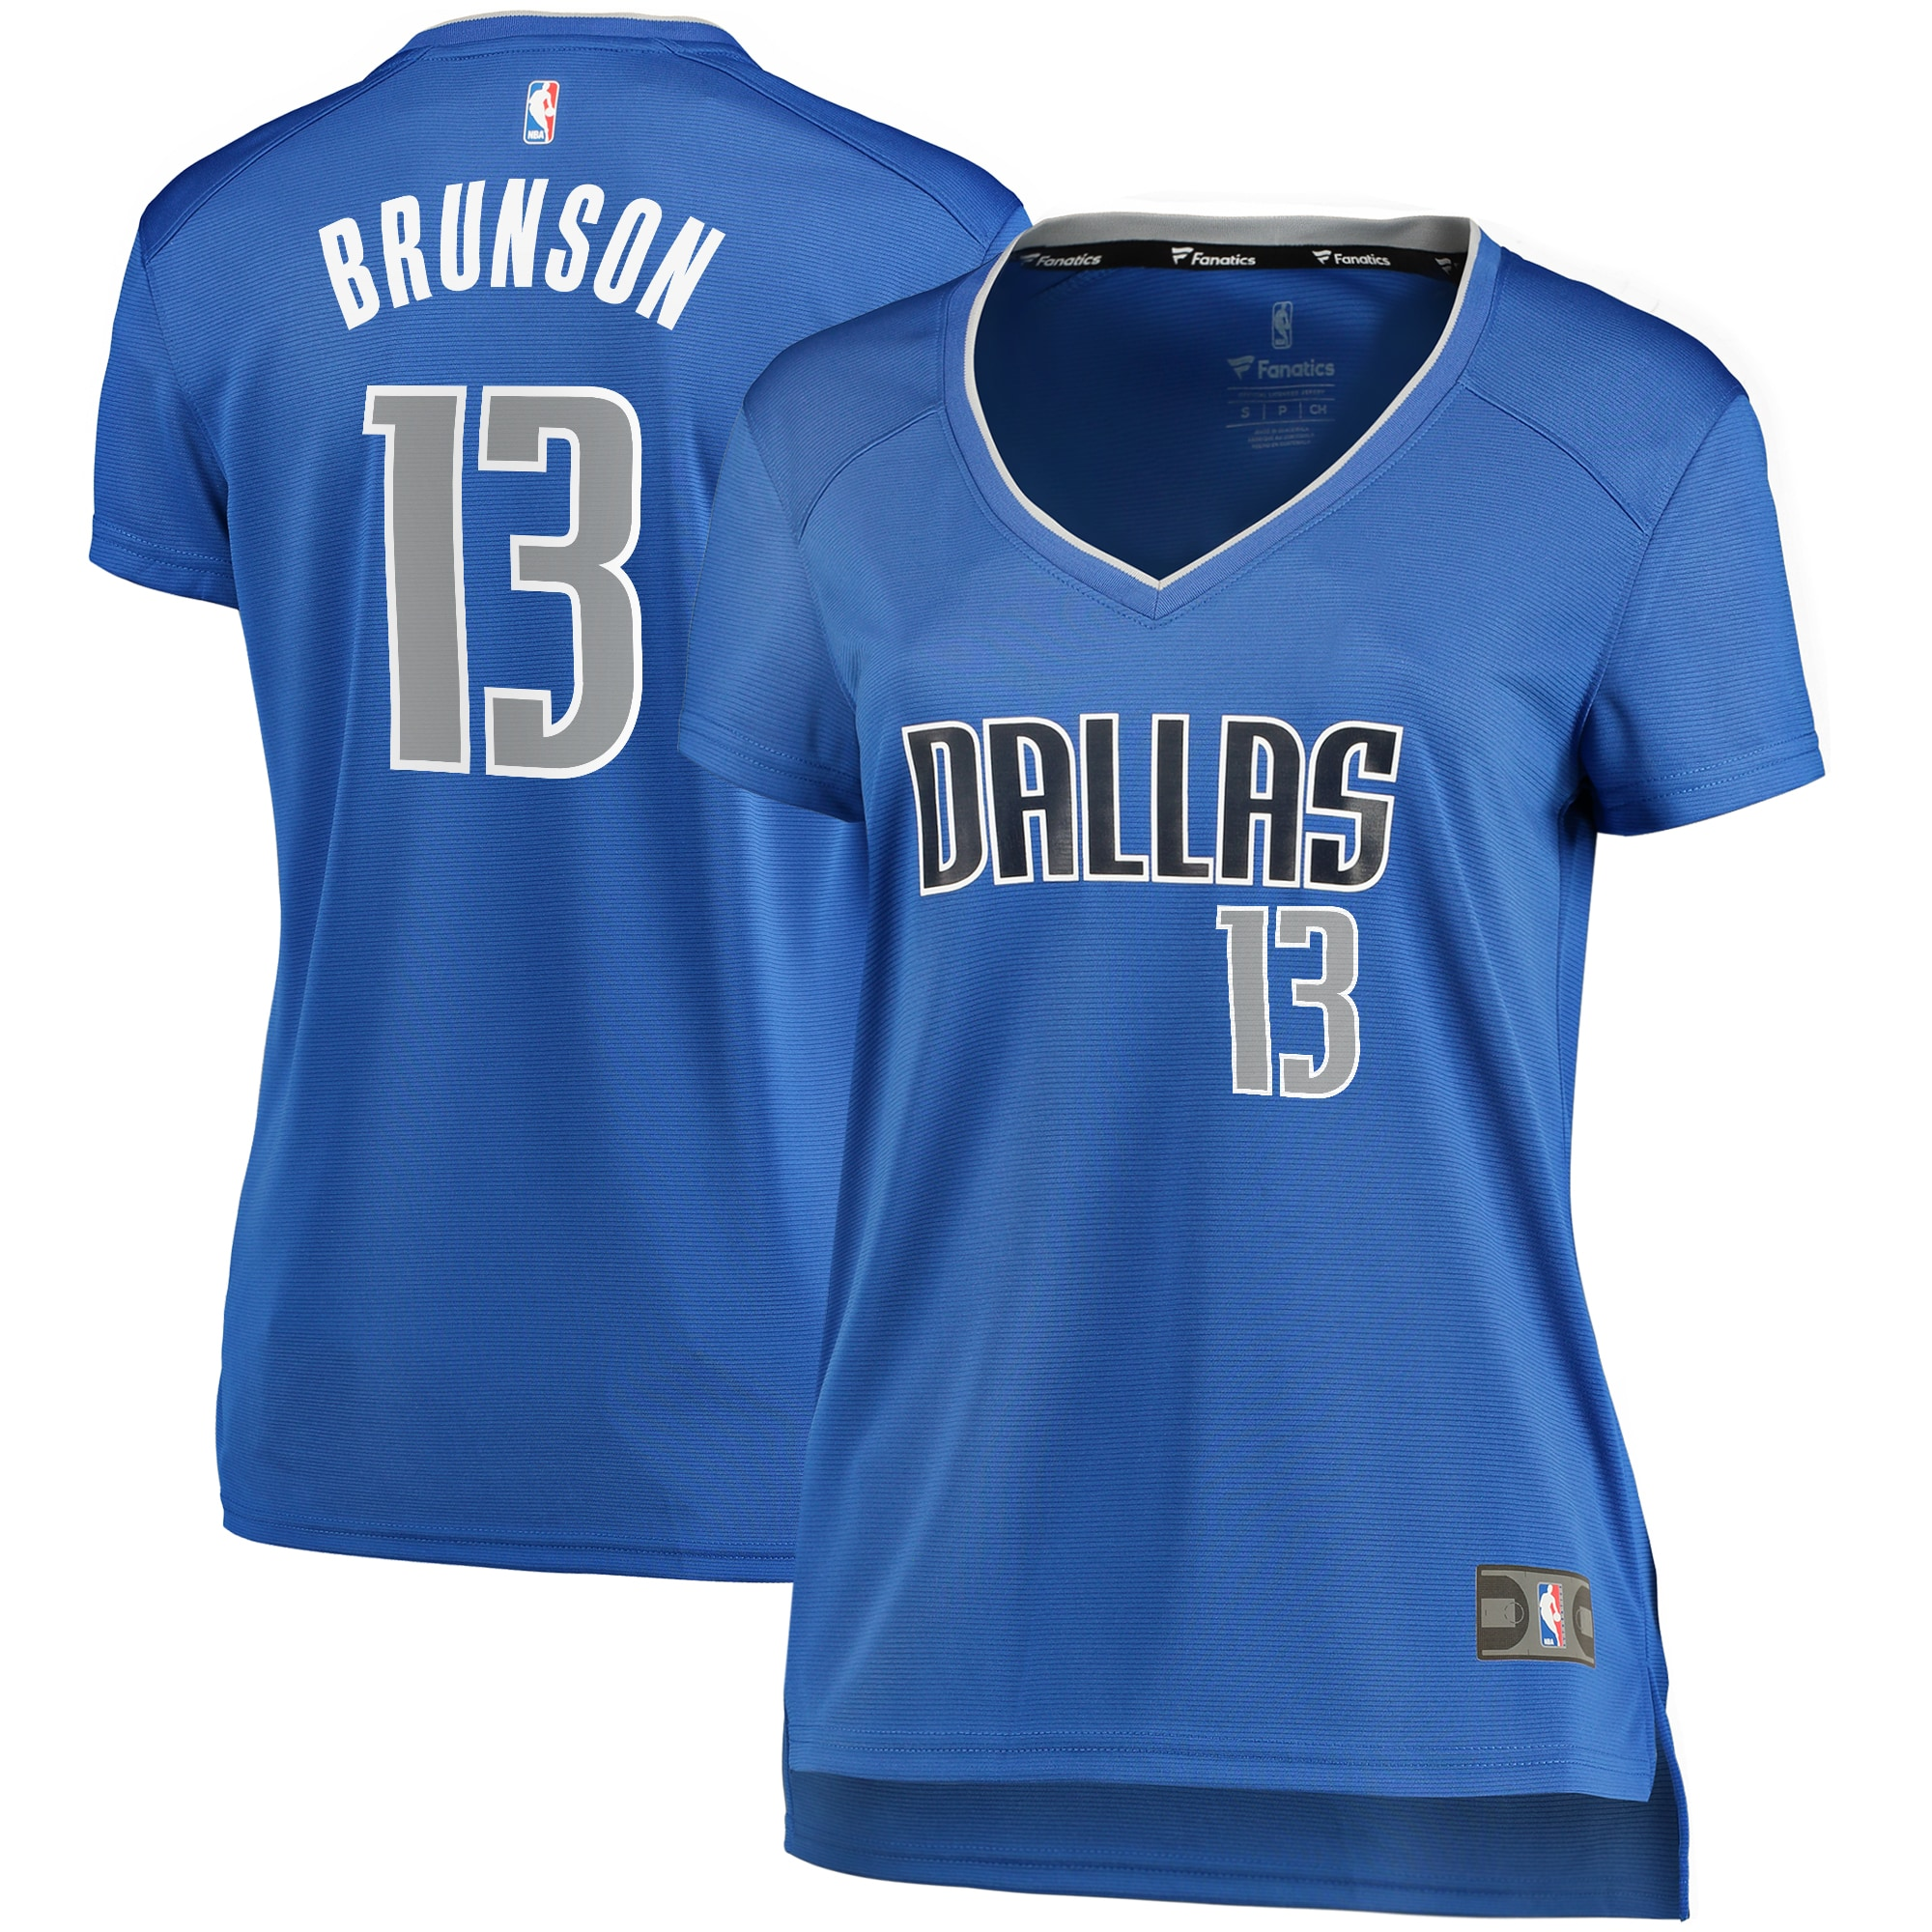 Jalen Brunson Dallas Mavericks Fanatics Branded Women's Fast Break Player Replica Jersey - Icon Edition - Blue